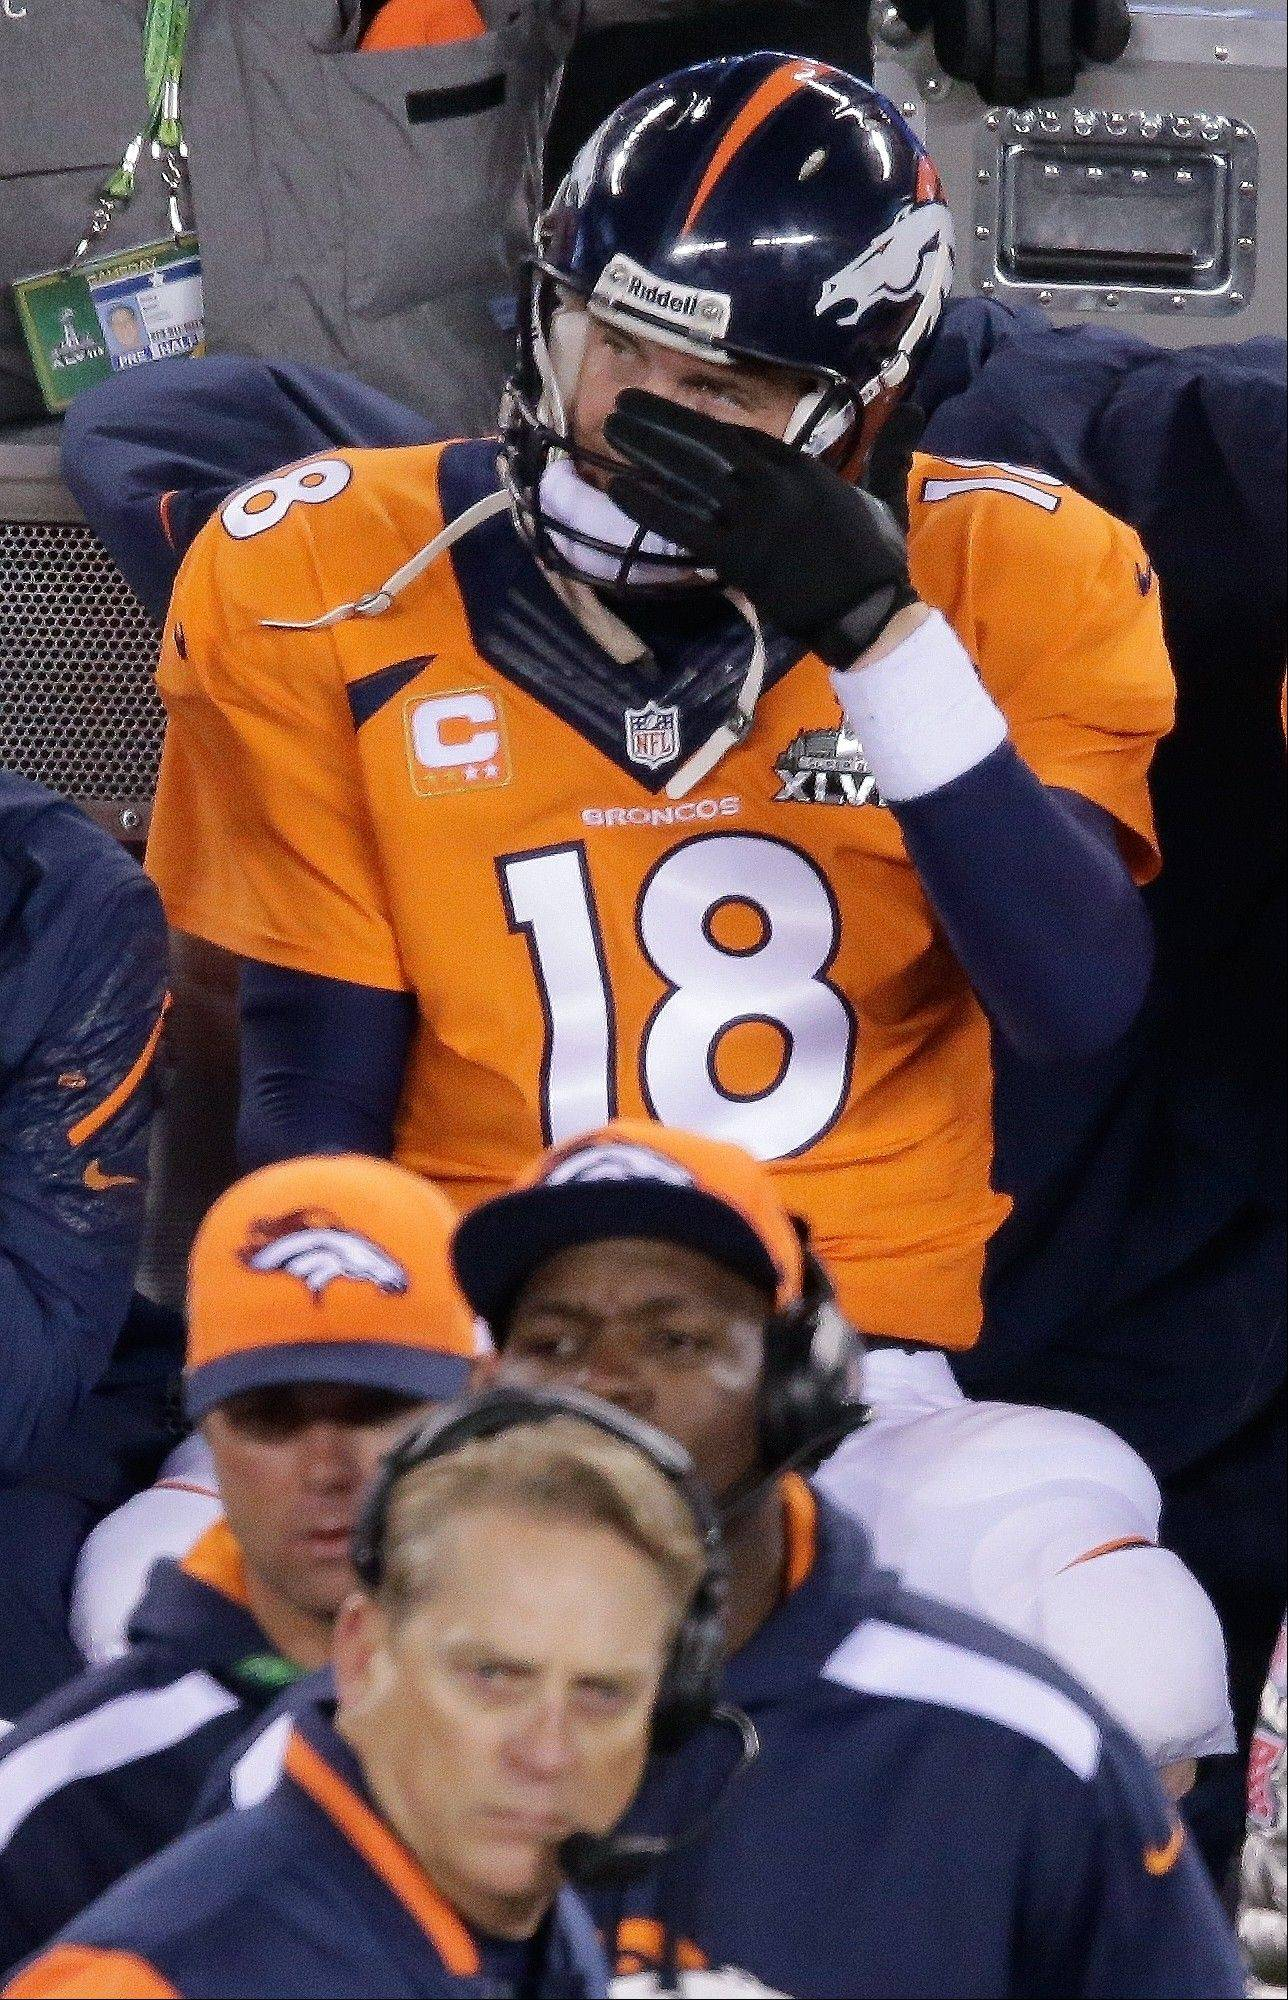 Denver Broncos' Peyton Manning watches play against the Seattle Seahawks during the second half.